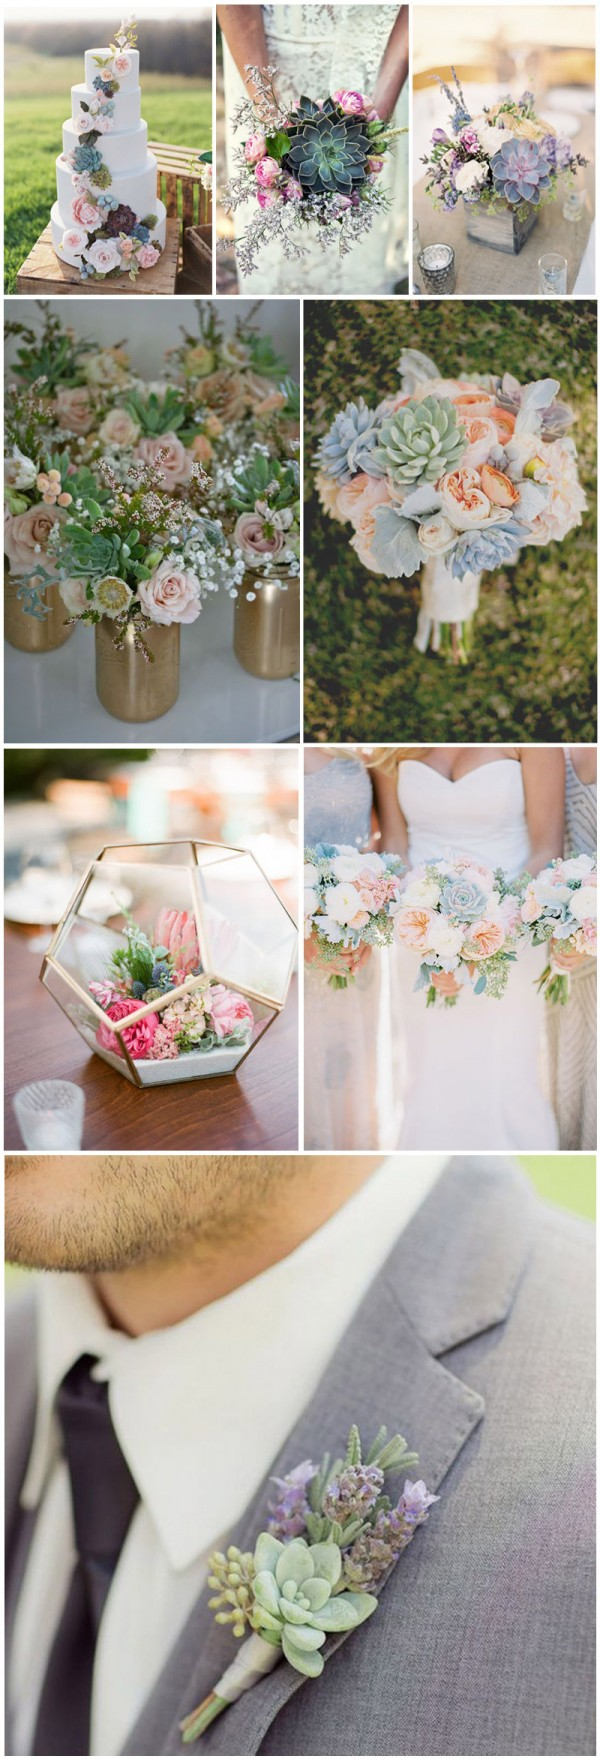 Romantic succulent wedding decor and bouquet ideas